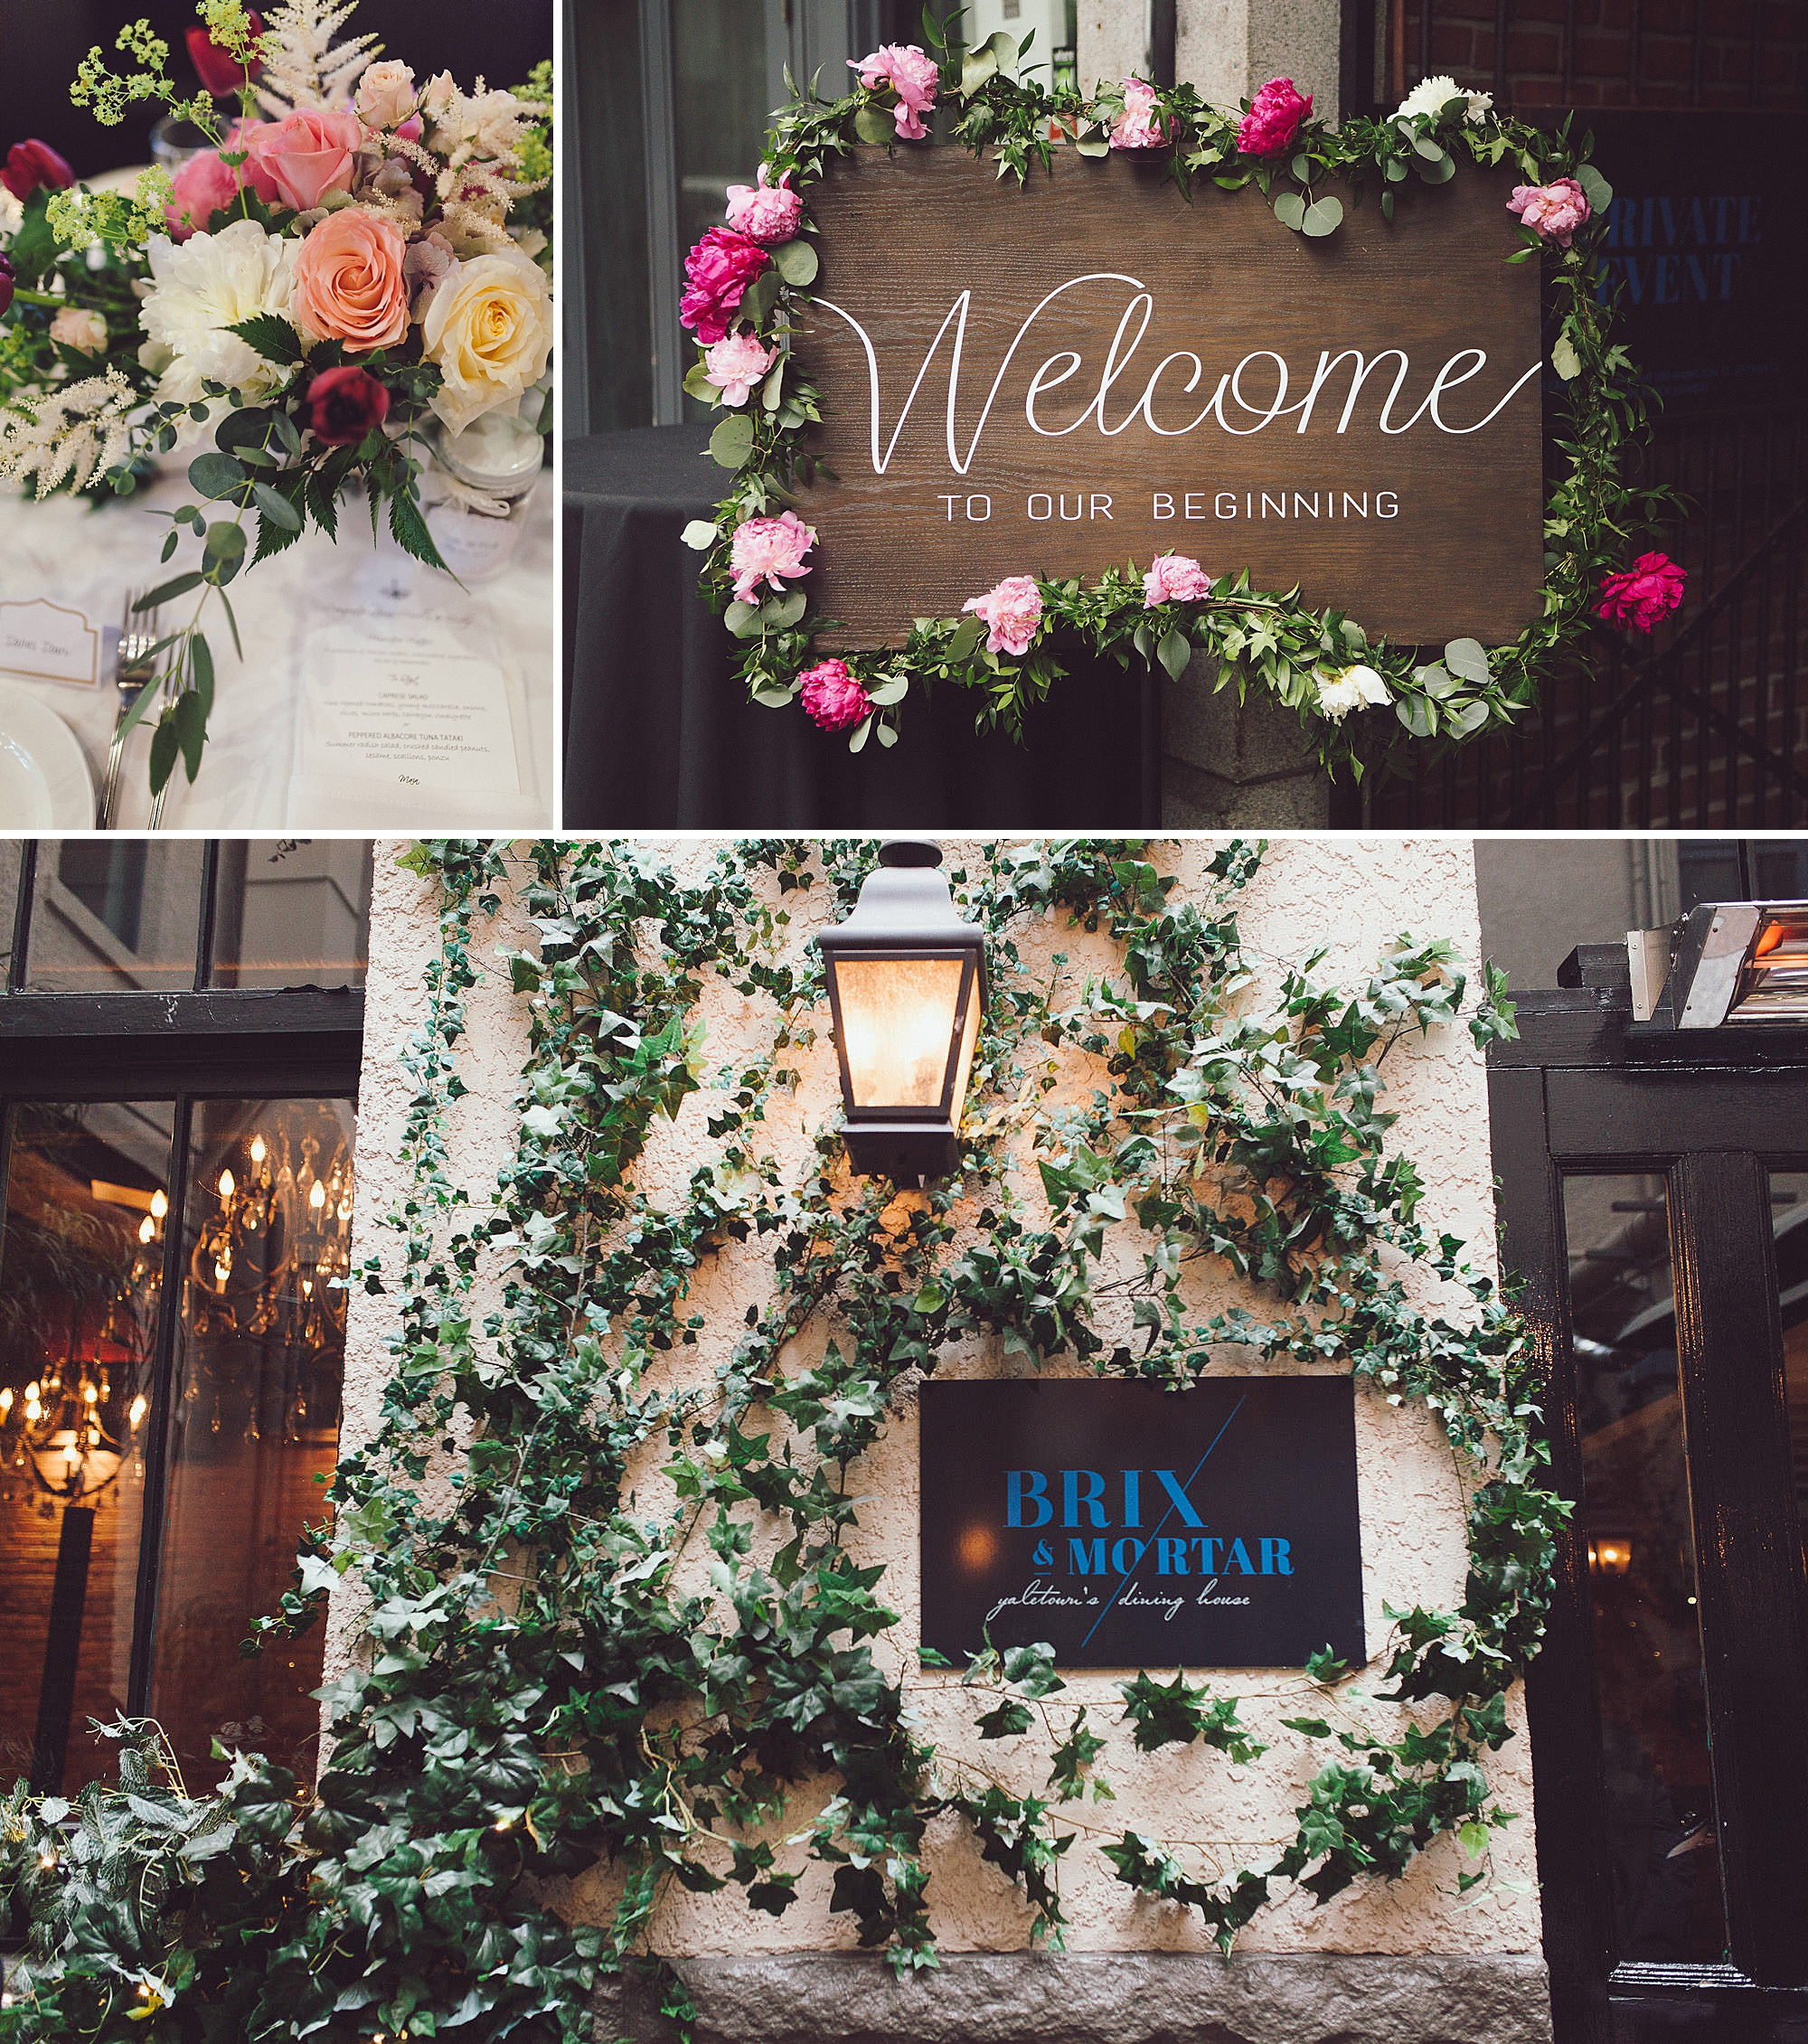 Decor and outside of the Brix and Mortar Restaurant in Vancouver